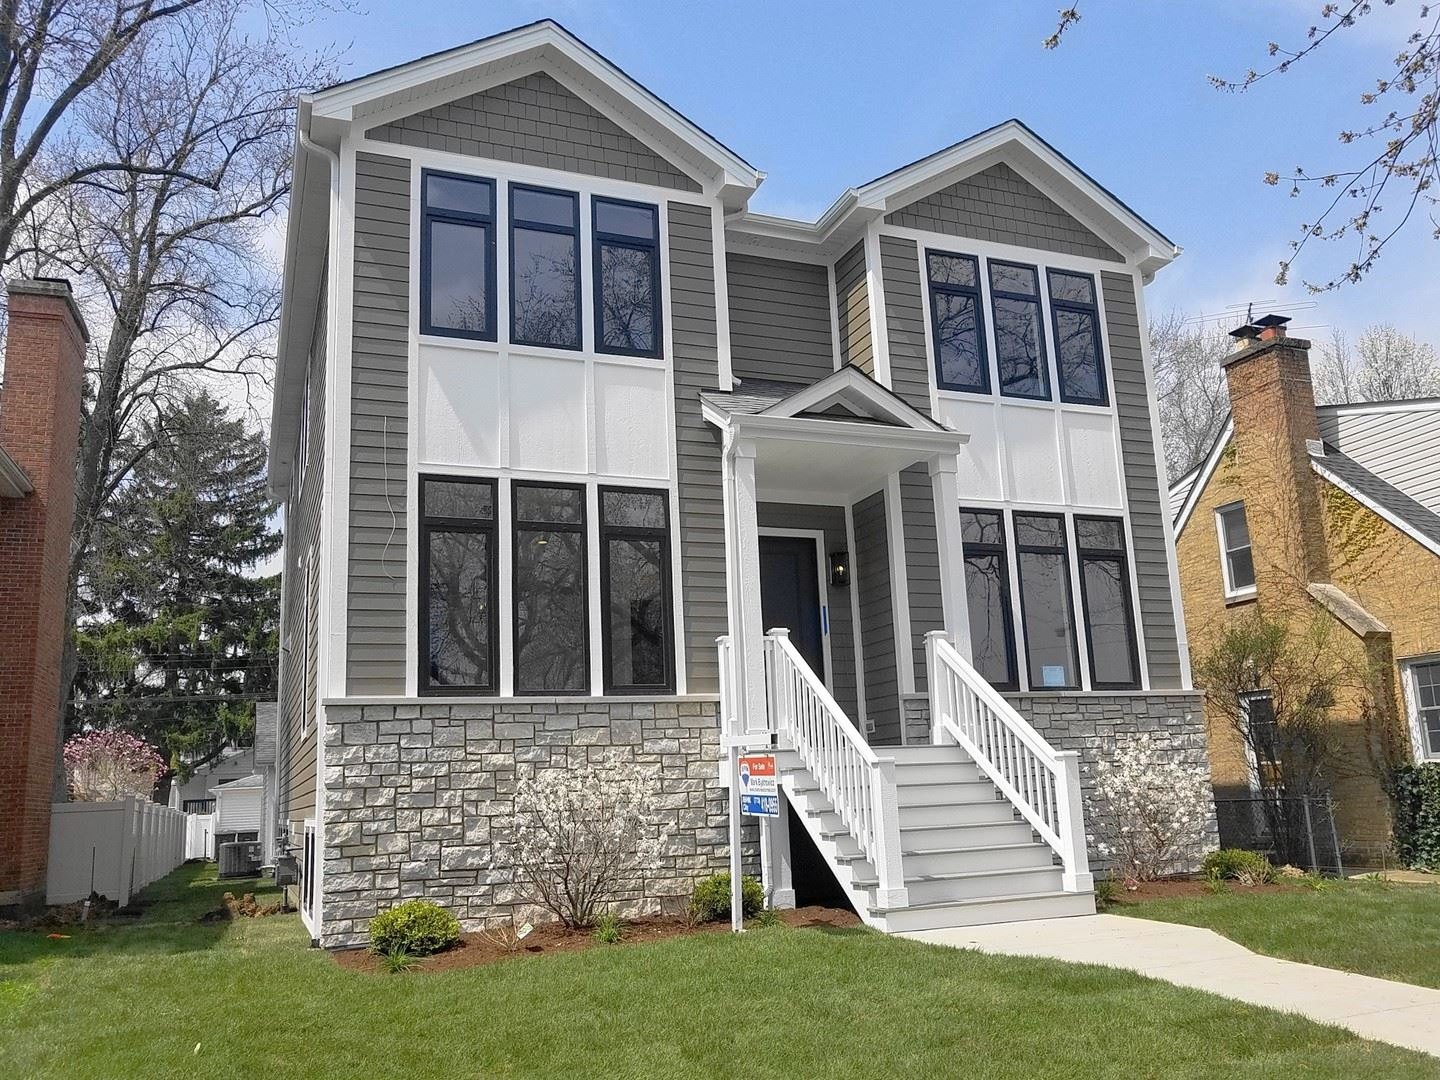 7122 N Odell Avenue, Chicago, IL 60631 - MLS#: 10686160